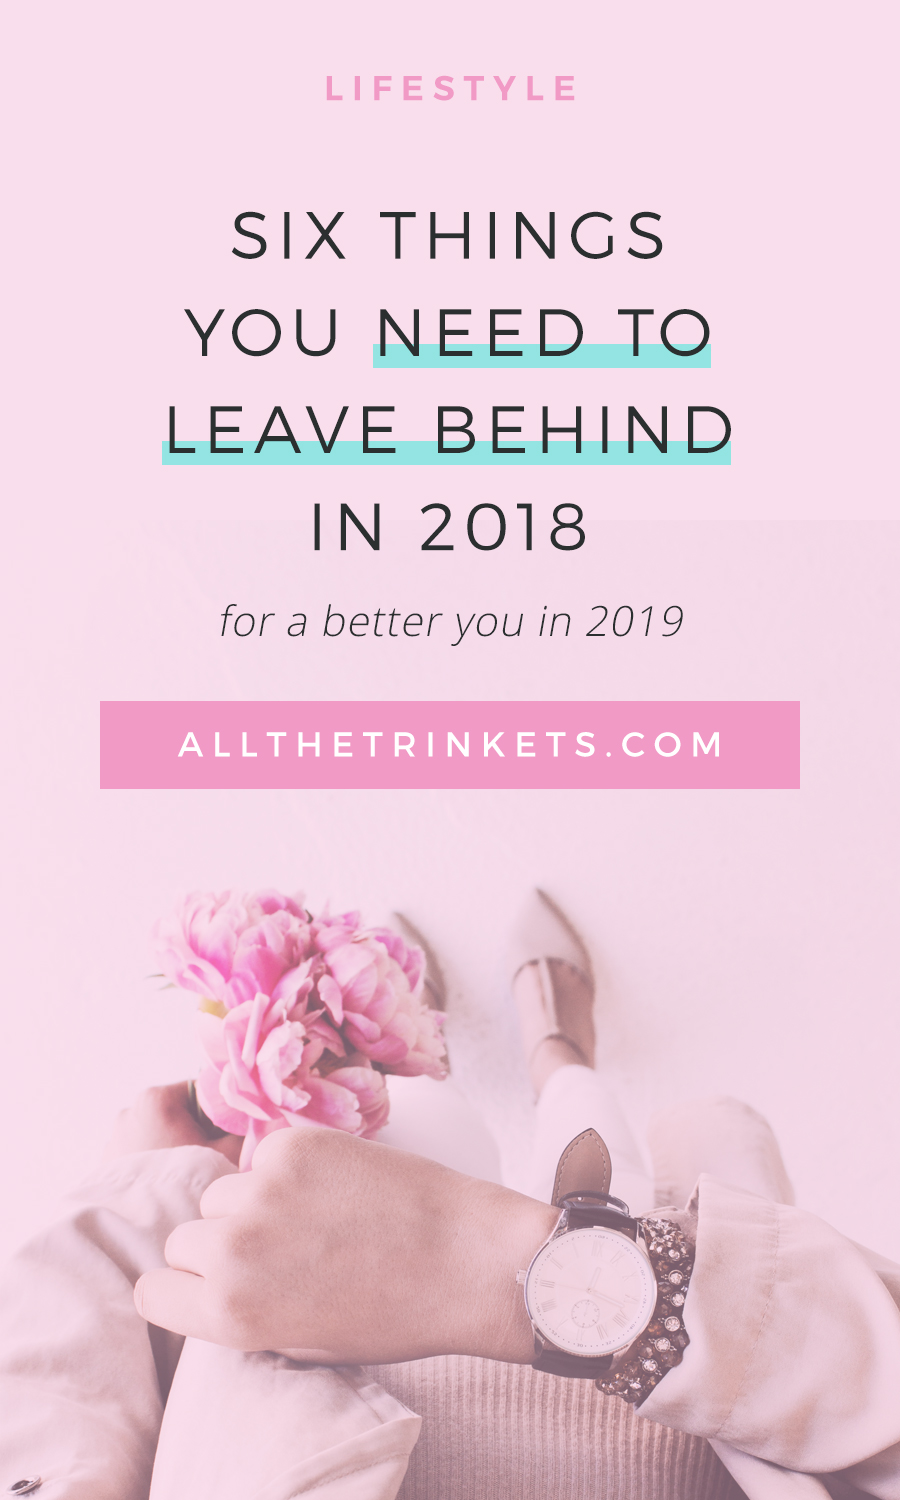 Wanna make 2019 better than last year? I hear you, friend. And I think, in order for you to move forward and be a better version of your 2018 self, you need to leave behind some things in 2018. Click on to read more.